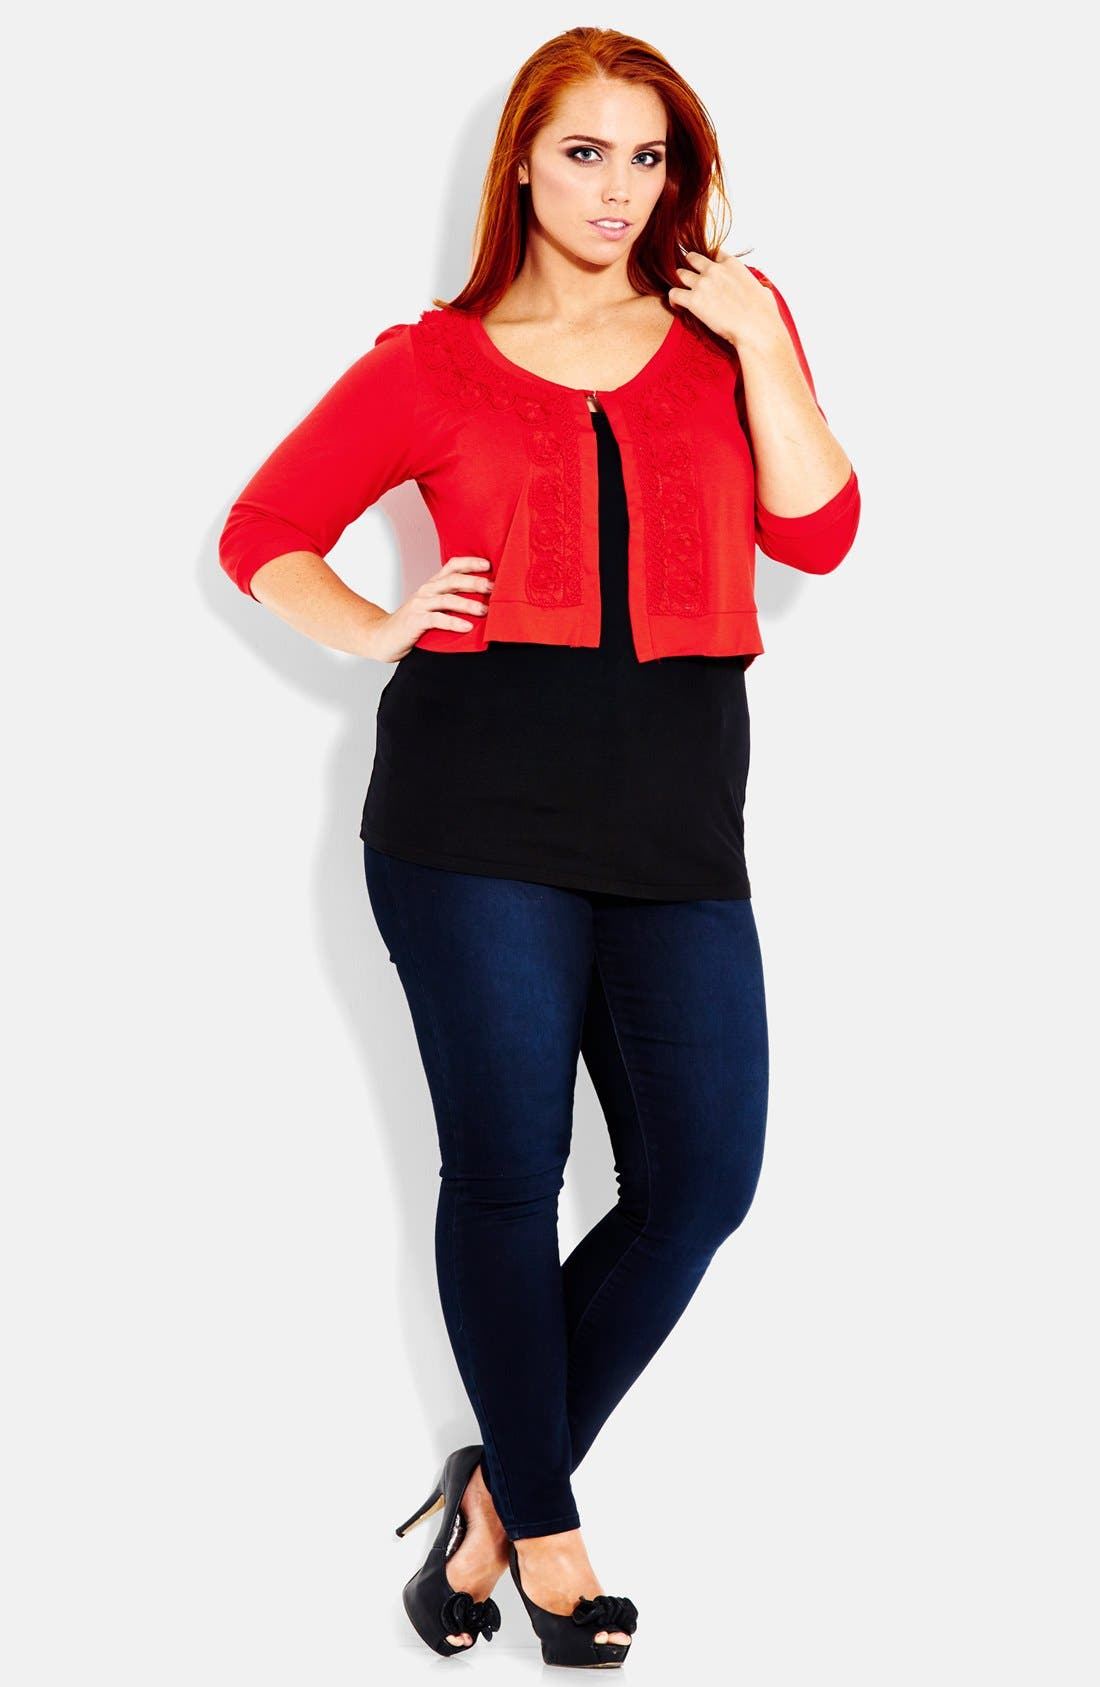 Main Image - City Chic 'Fancy' Cropped Knit Cardigan (Plus Size)